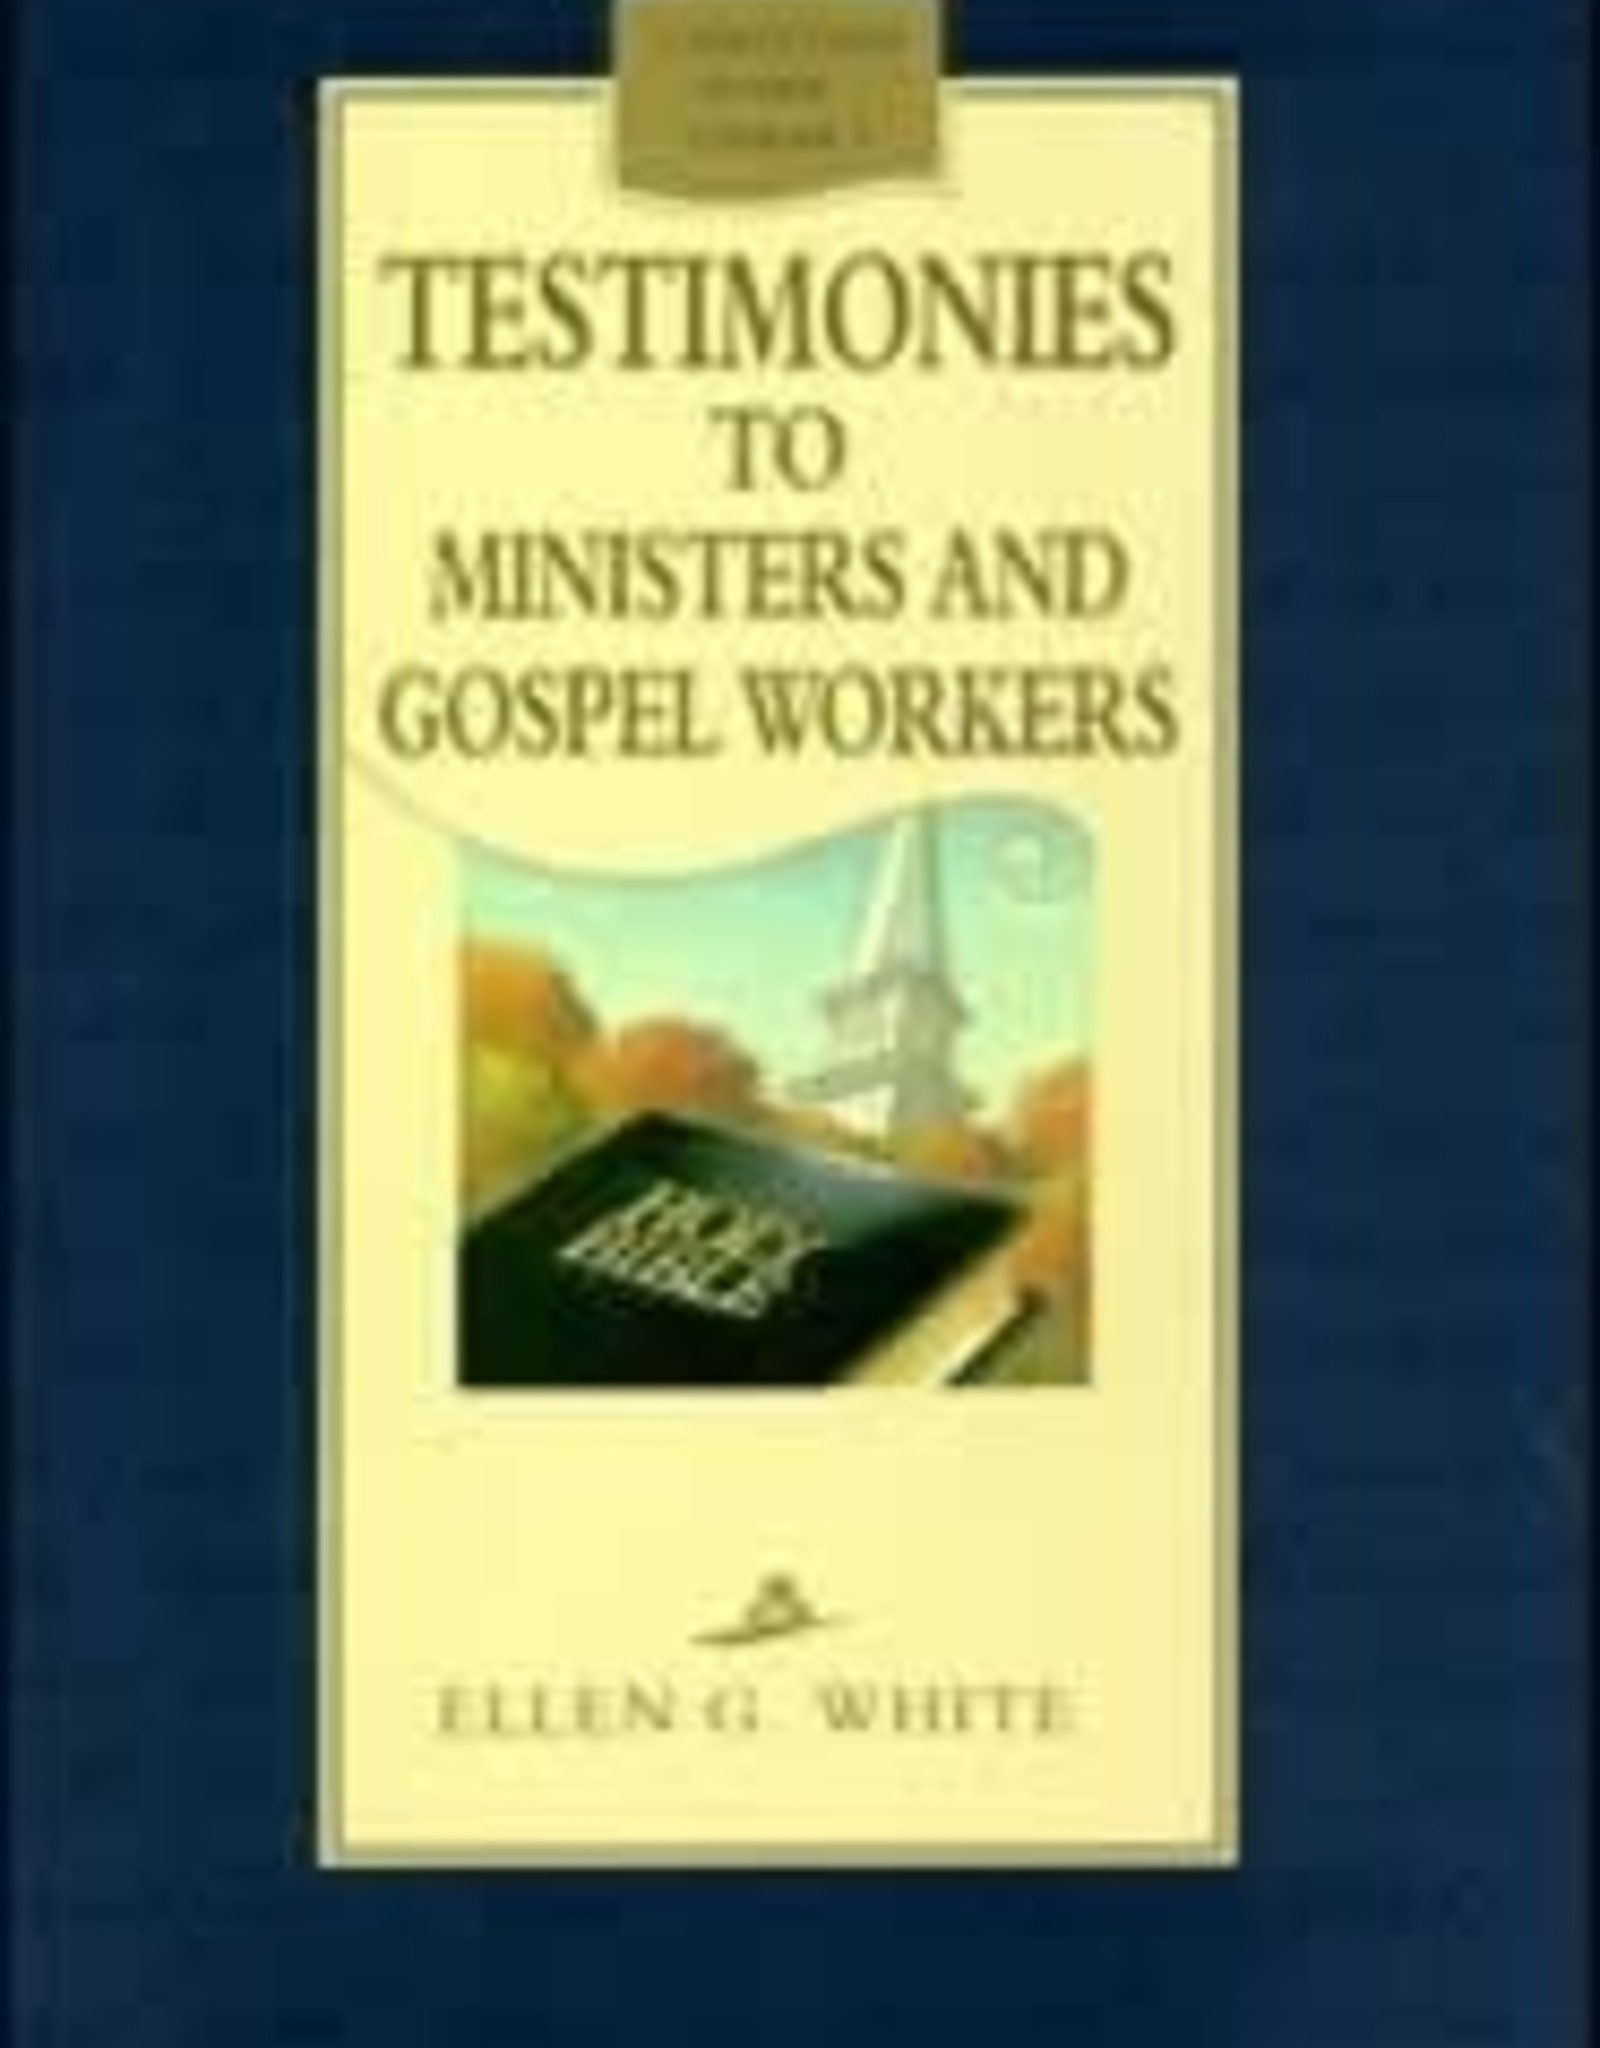 Ellen G.White Testimonies to Ministers and Gospel Workers